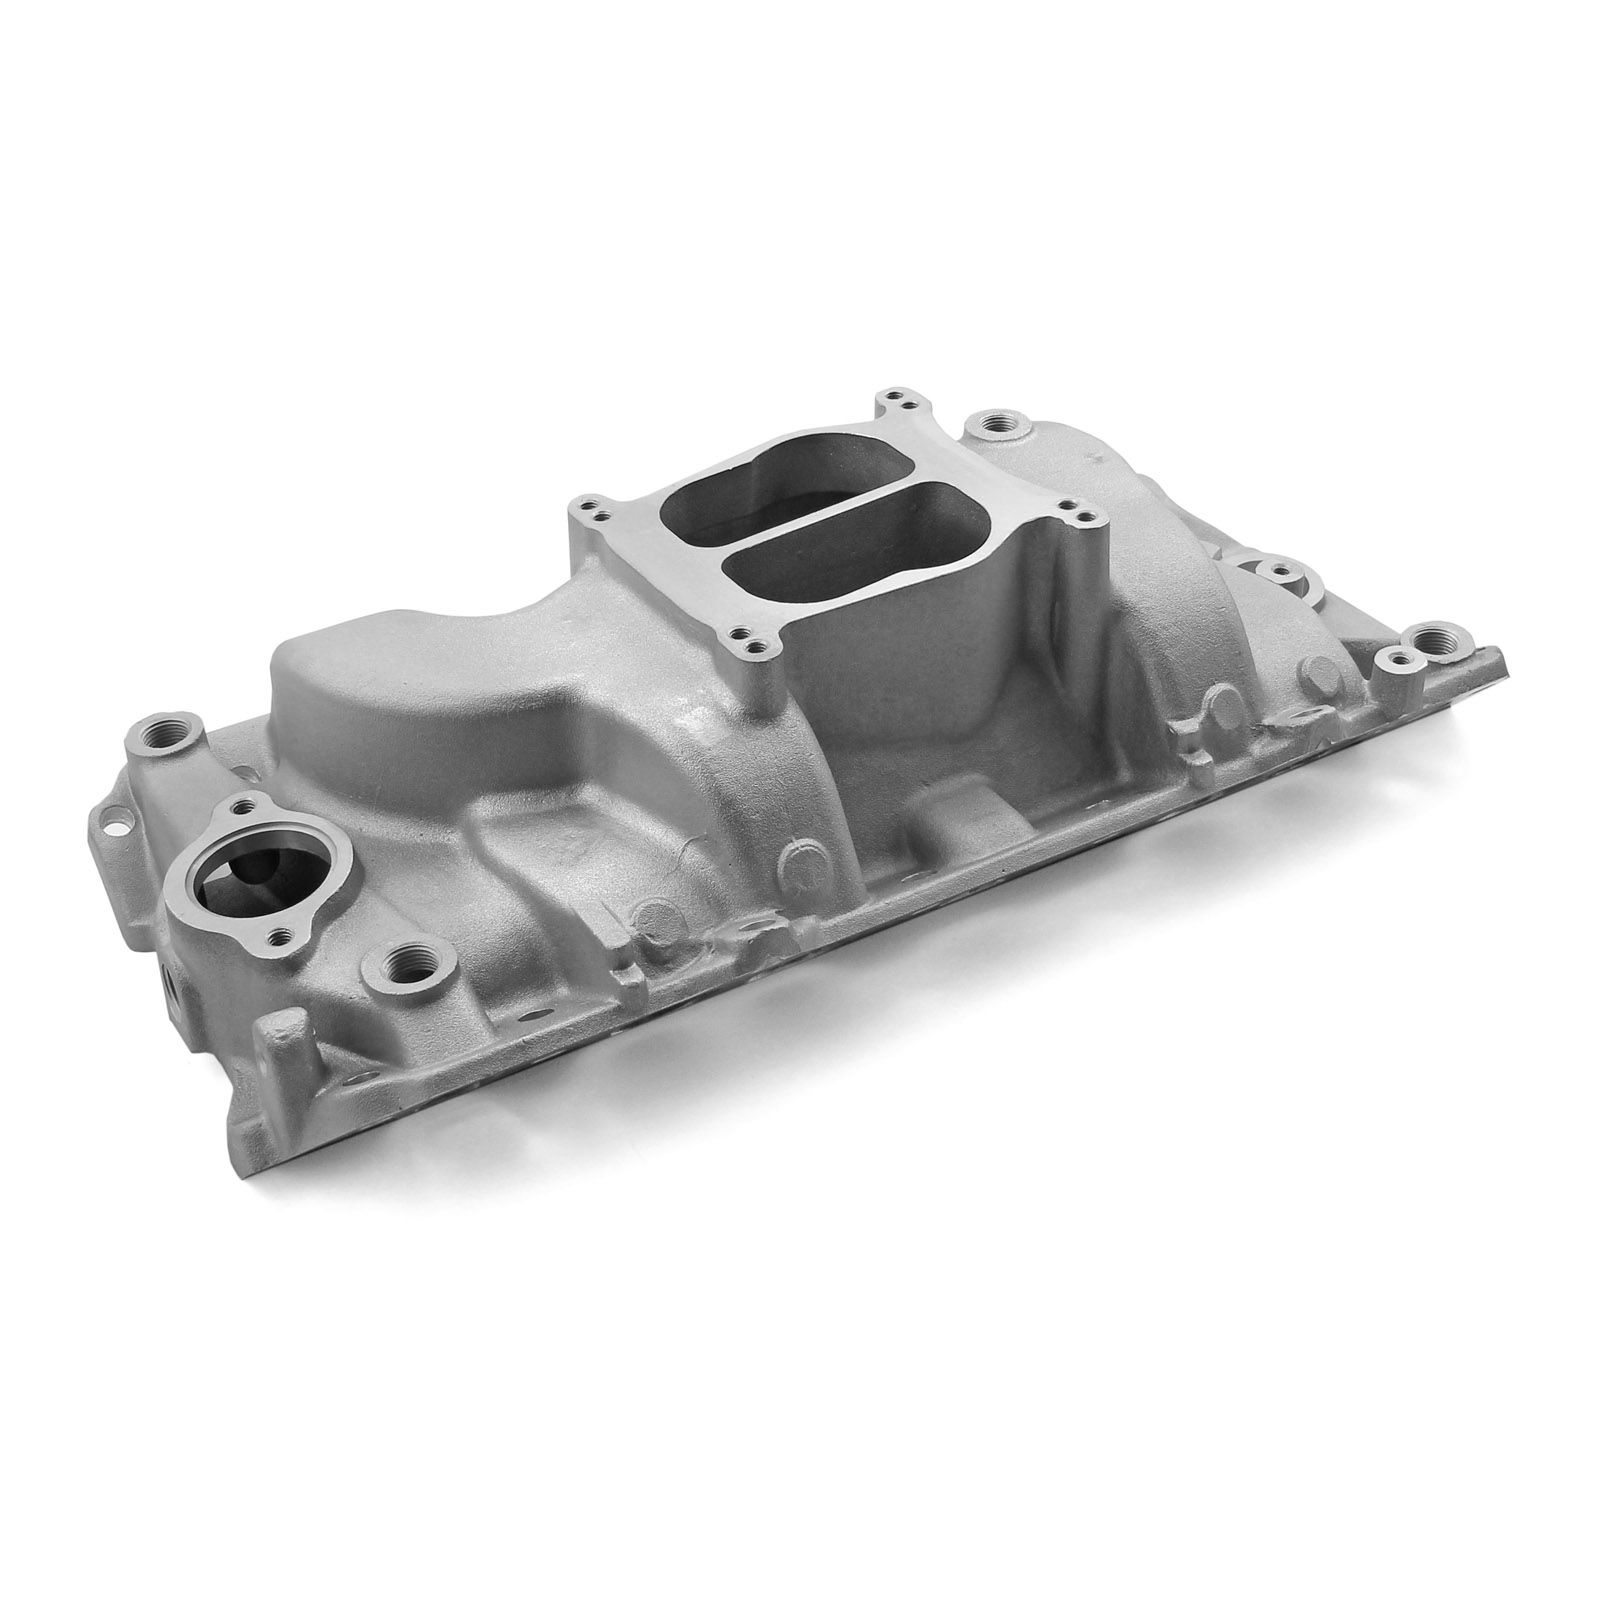 Take-Off Chevy BBC 454 Holeshot Oval Port Intake Manifold